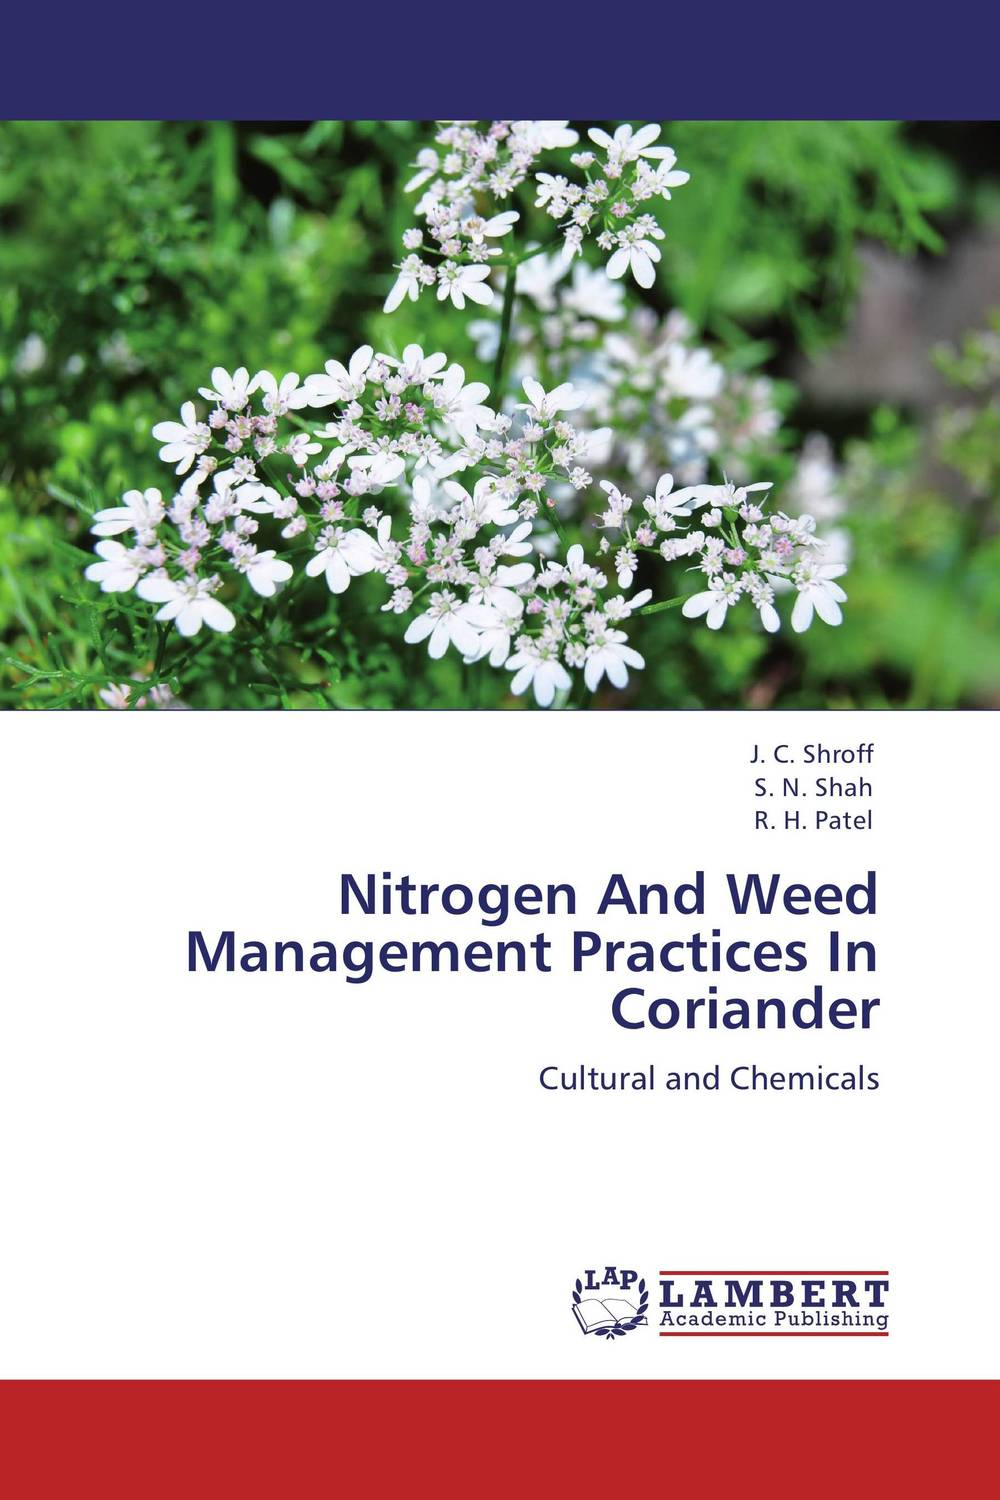 Nitrogen And Weed Management Practices In Coriander pastoralism and agriculture pennar basin india